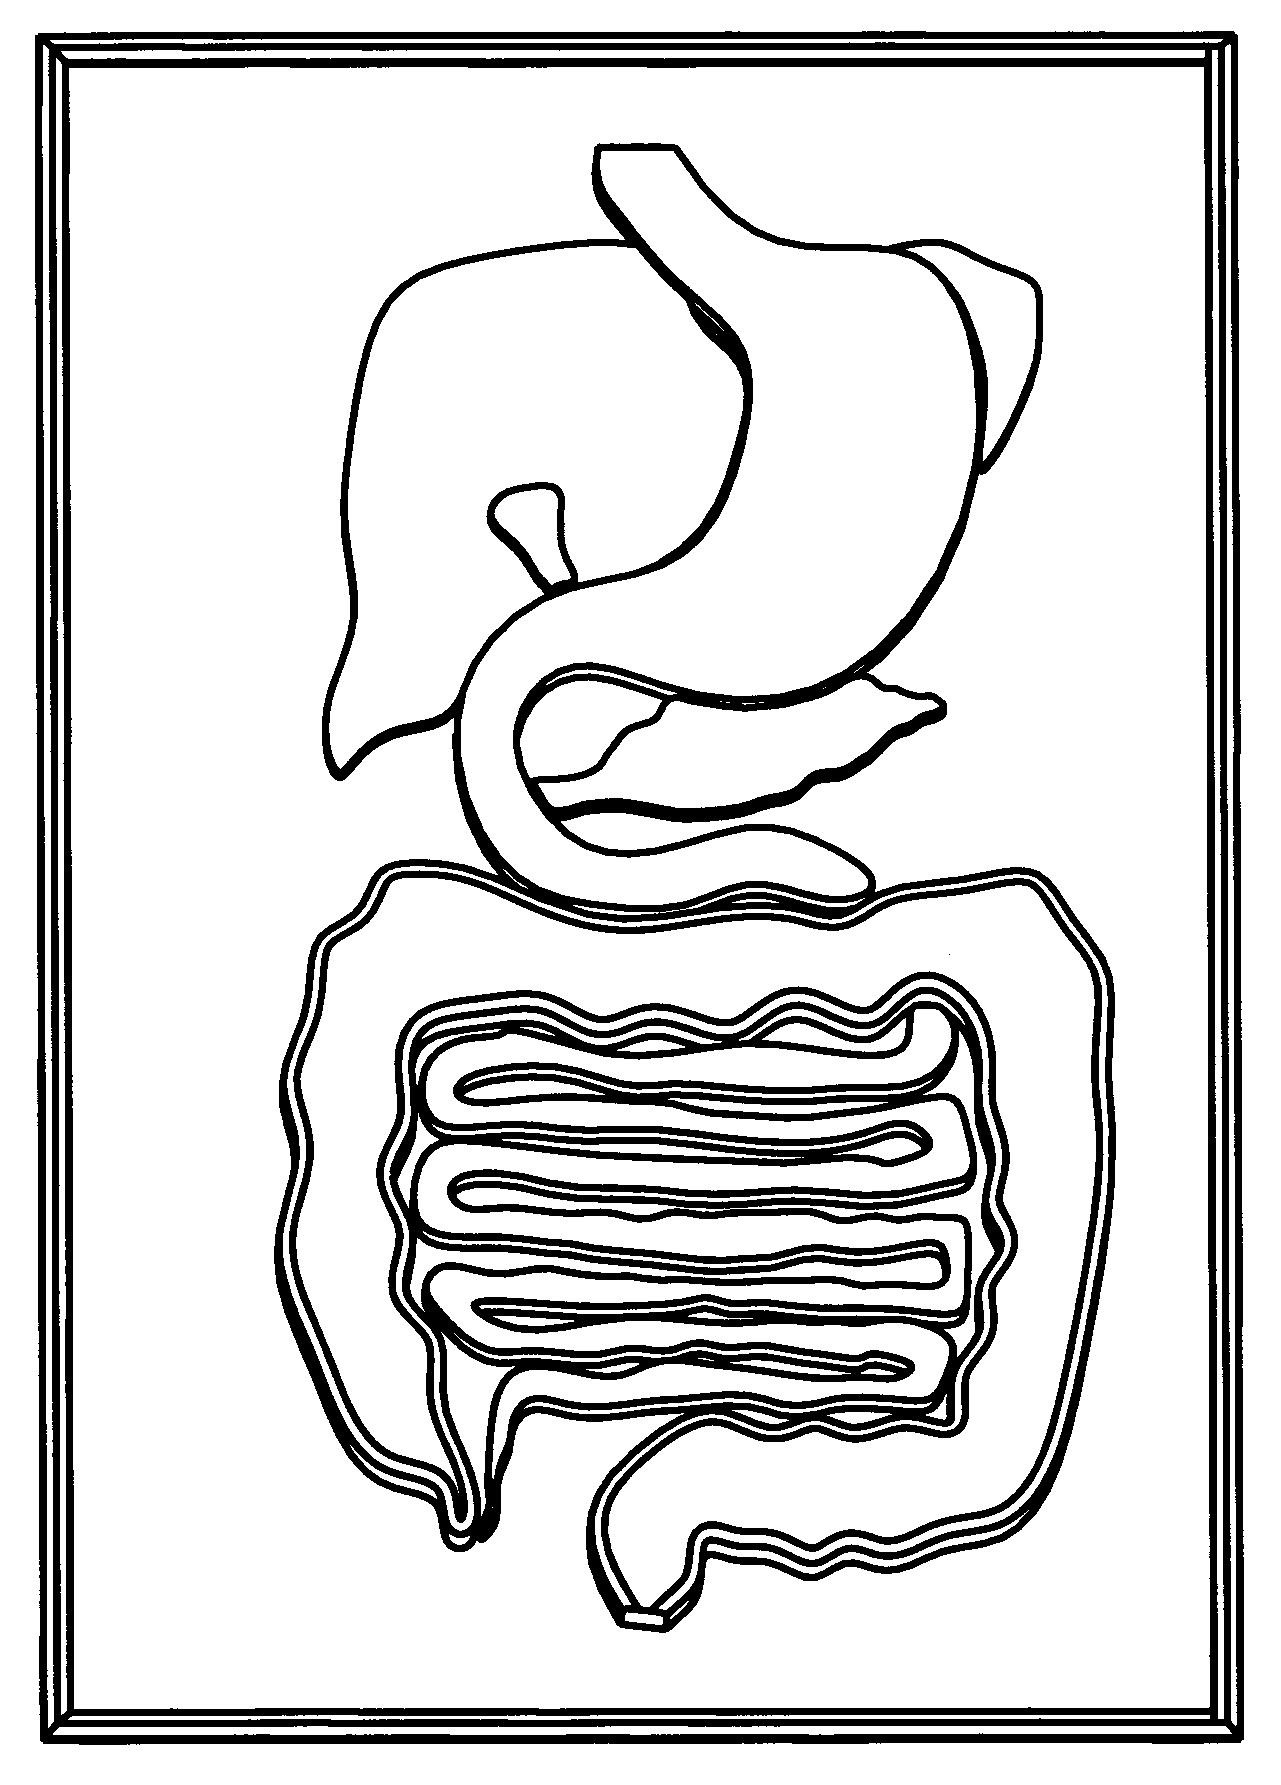 Human digestive system drawing at getdrawings free for 1281x1785 internalg ccuart Gallery